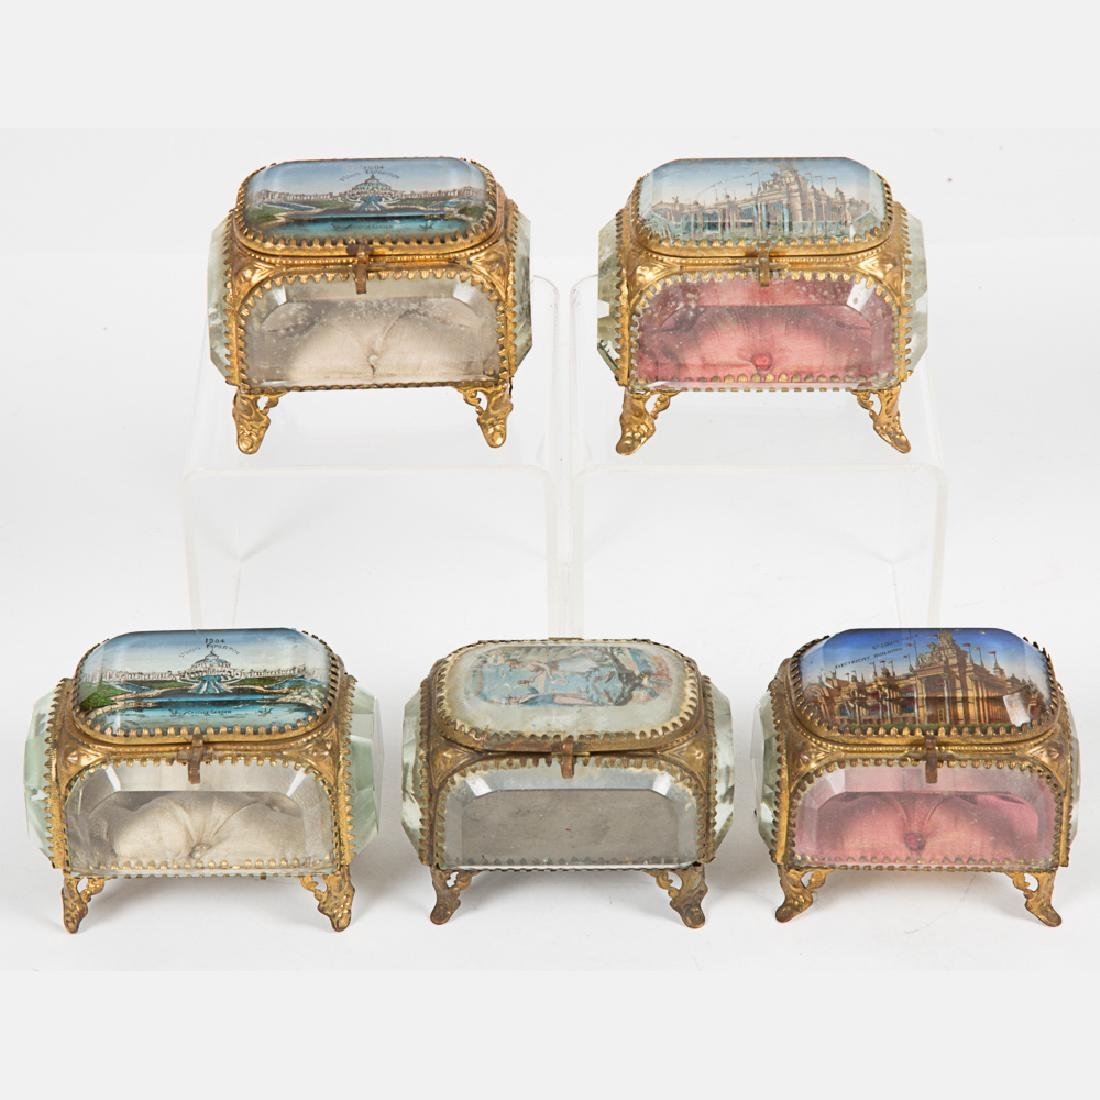 A Group of Five Glass and Brass Jewelry Boxes from the - 7